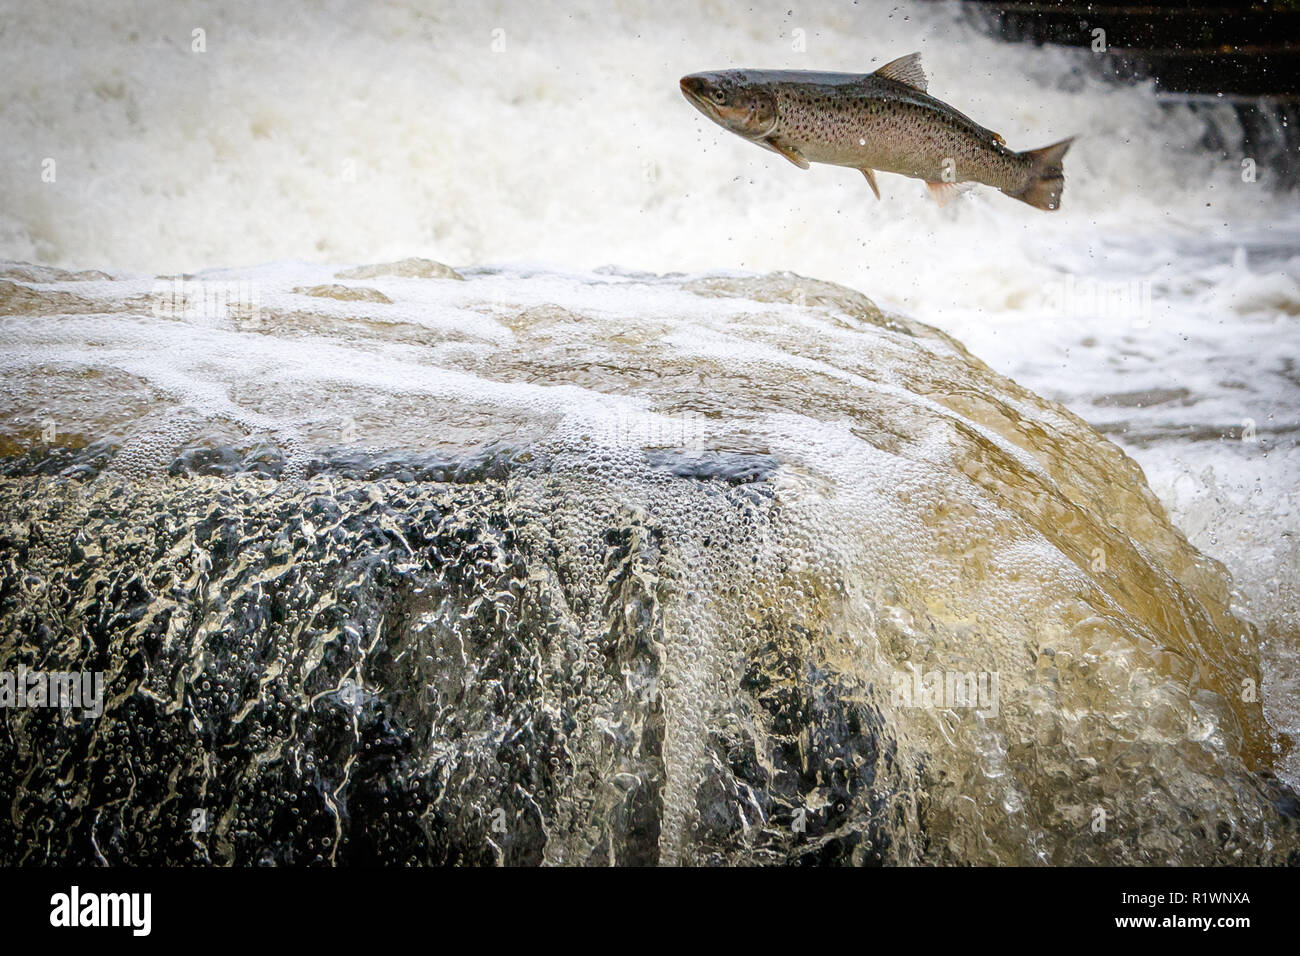 Leaping Sea Trout on its migration to the spawning beds upstream - Stock Image